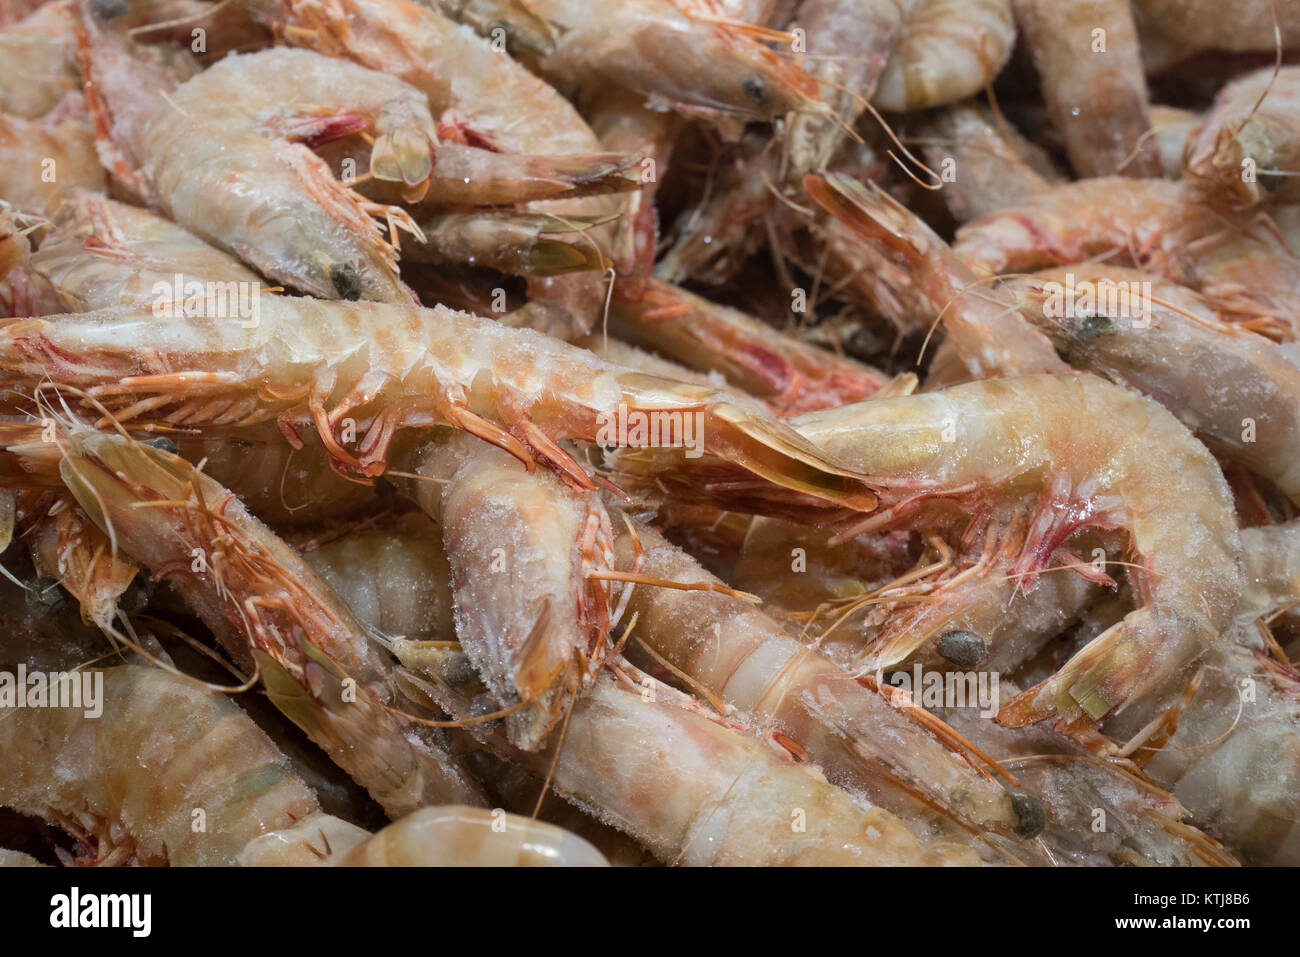 raw seafood in grocery store sydney australia - Stock Image